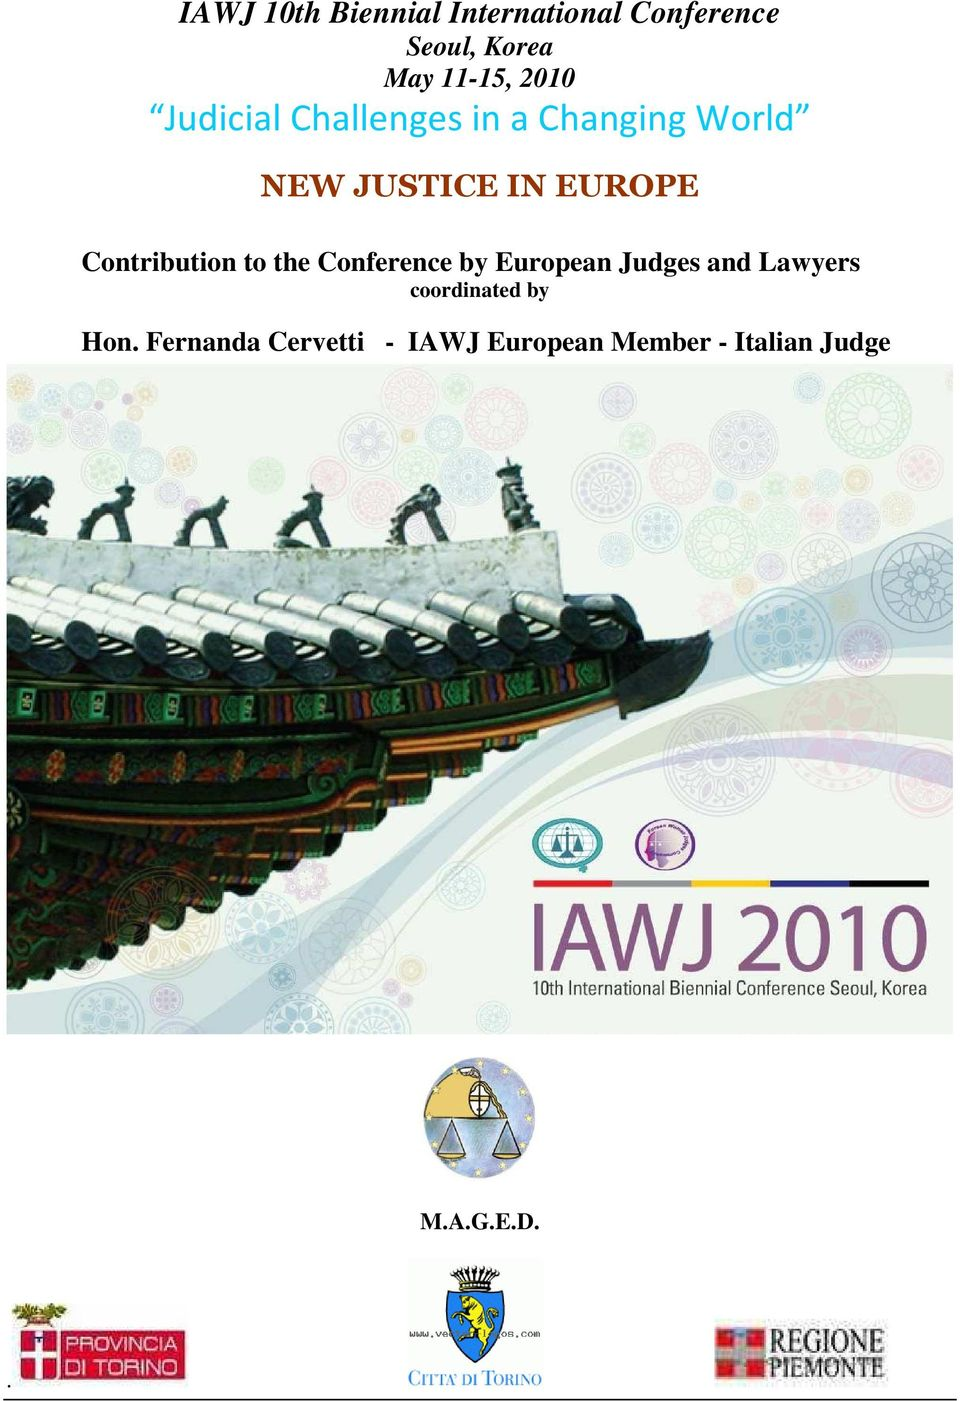 Contribution to the Conference by European Judges and Lawyers